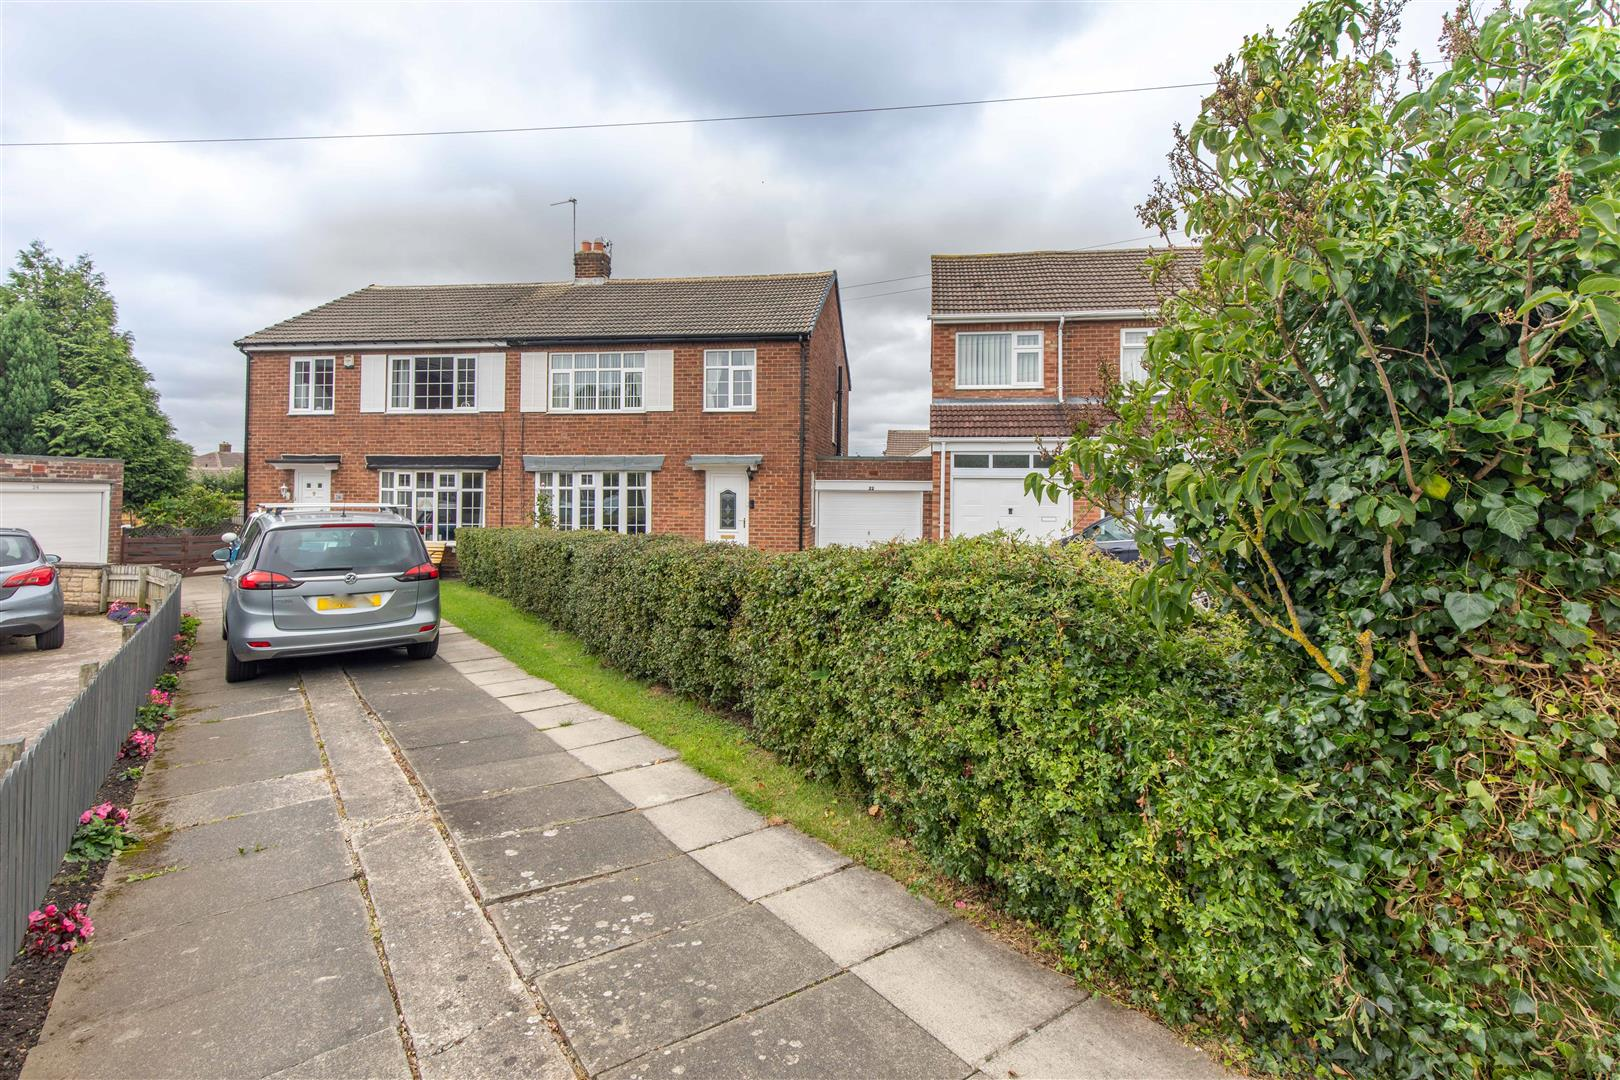 3 bed semi-detached house for sale in Newcastle Upon Tyne, NE13 6JG  - Property Image 1